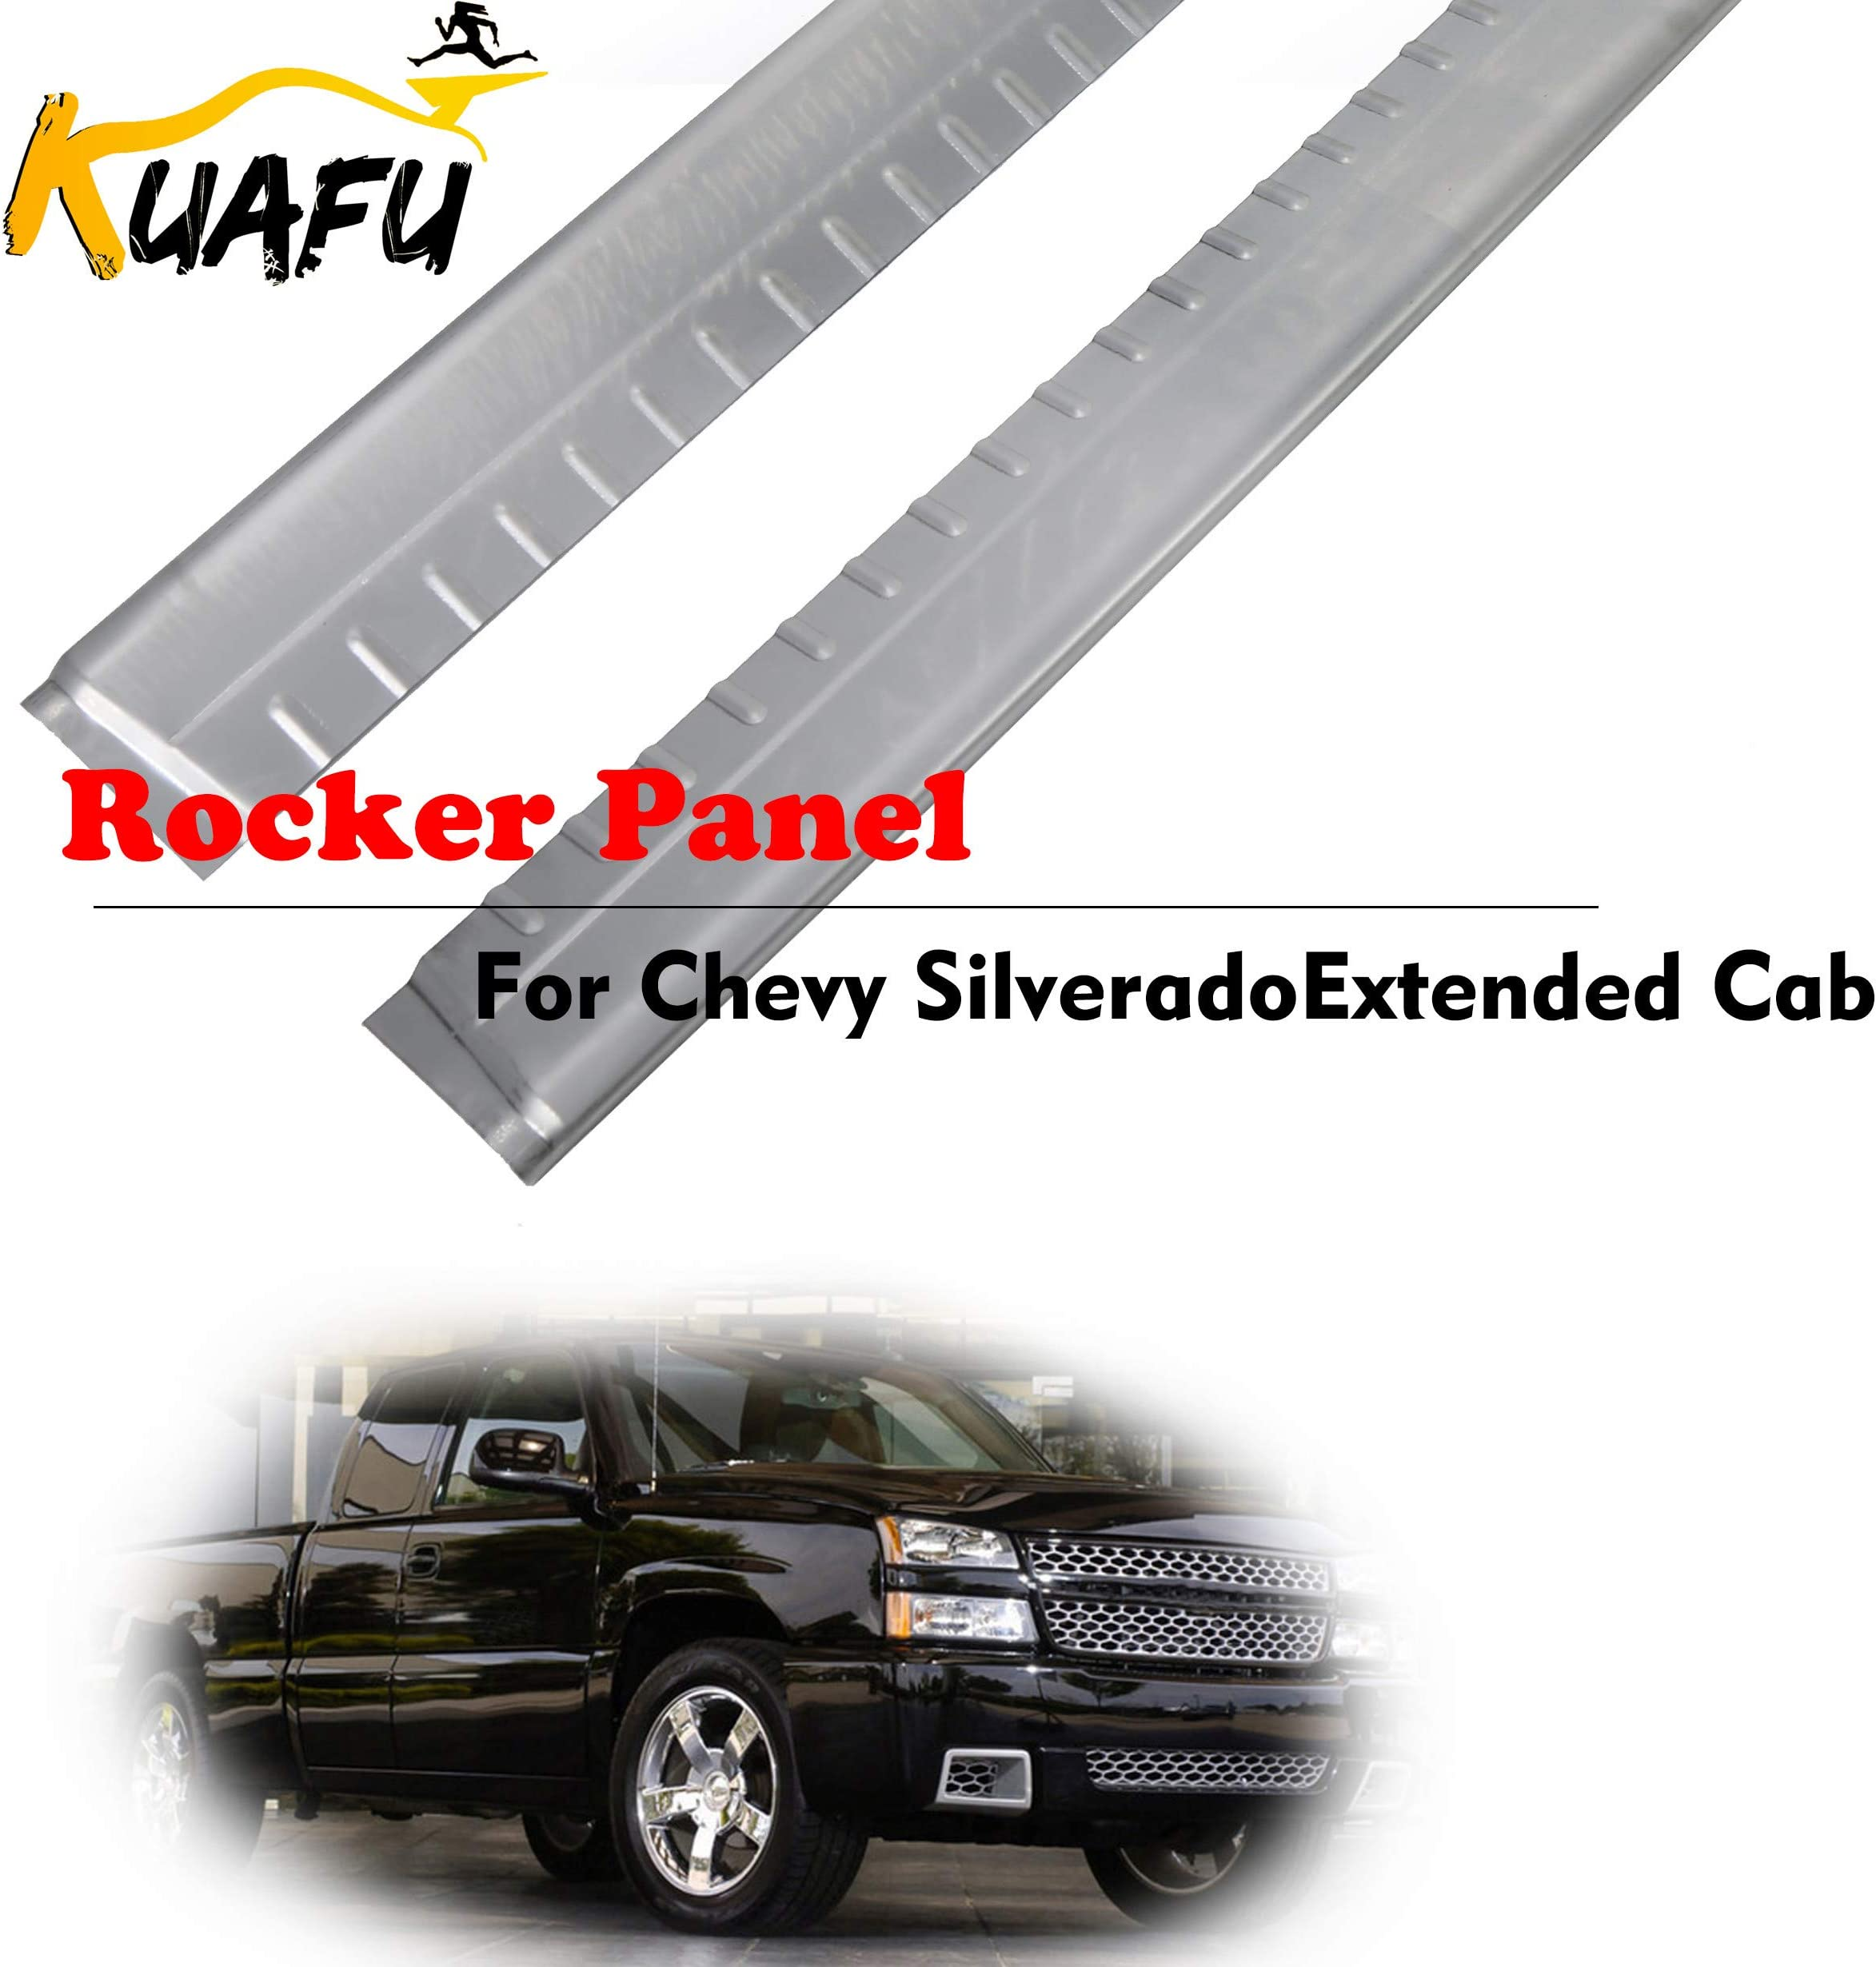 Extended Cab Metal Rocker Panels 4 Door Lower Slip-On Replacement For 0856001 0856002 Fits 1999-2007 Chevy Silverado/GMC Sierra